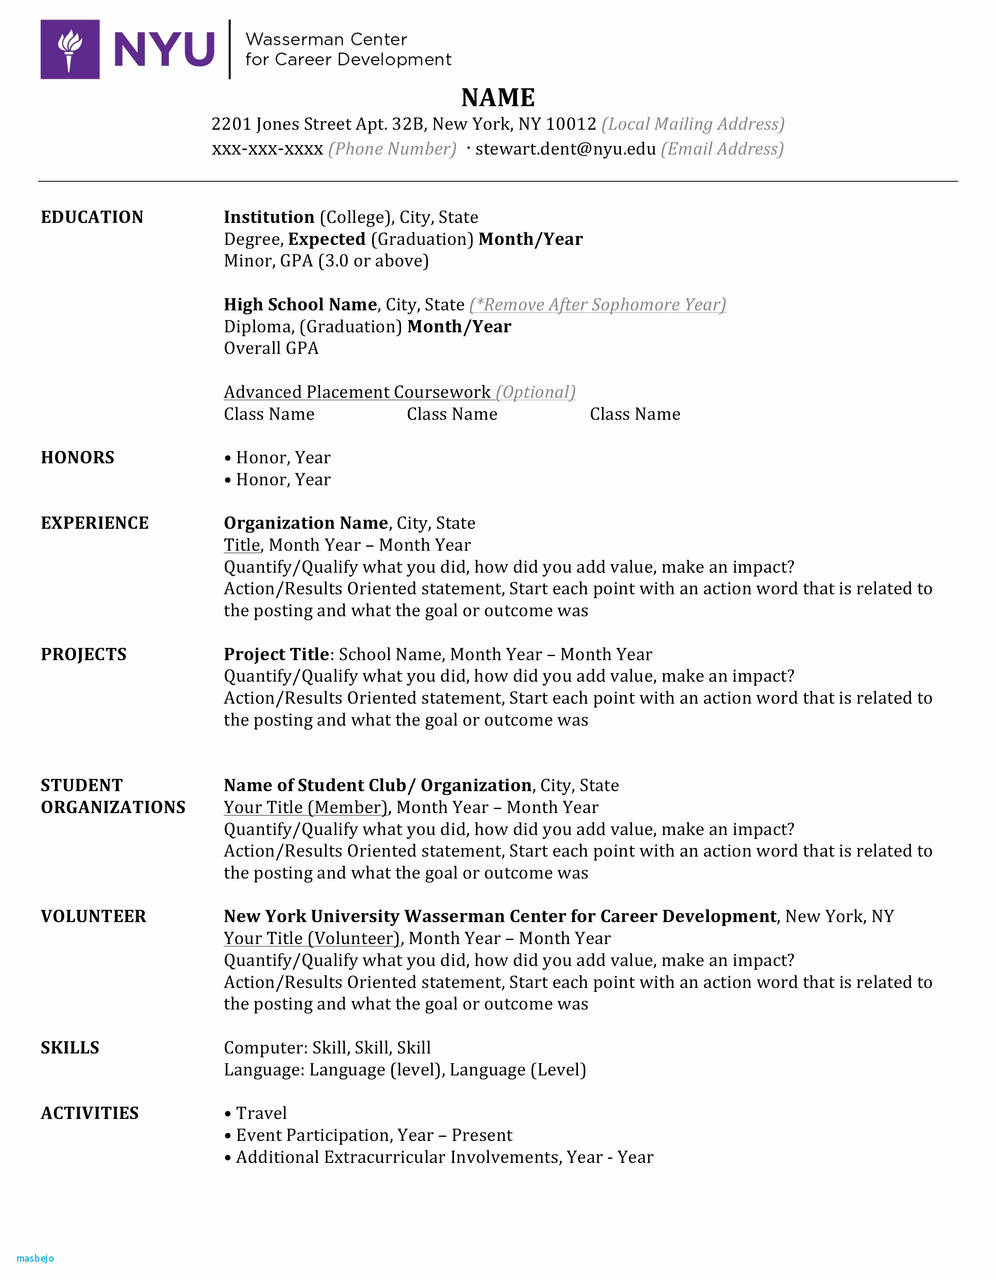 ken coleman resume template example-Resume Template Word Download Unique Resume Templates Word Free Download Lovely Pr Resume Template 8-h